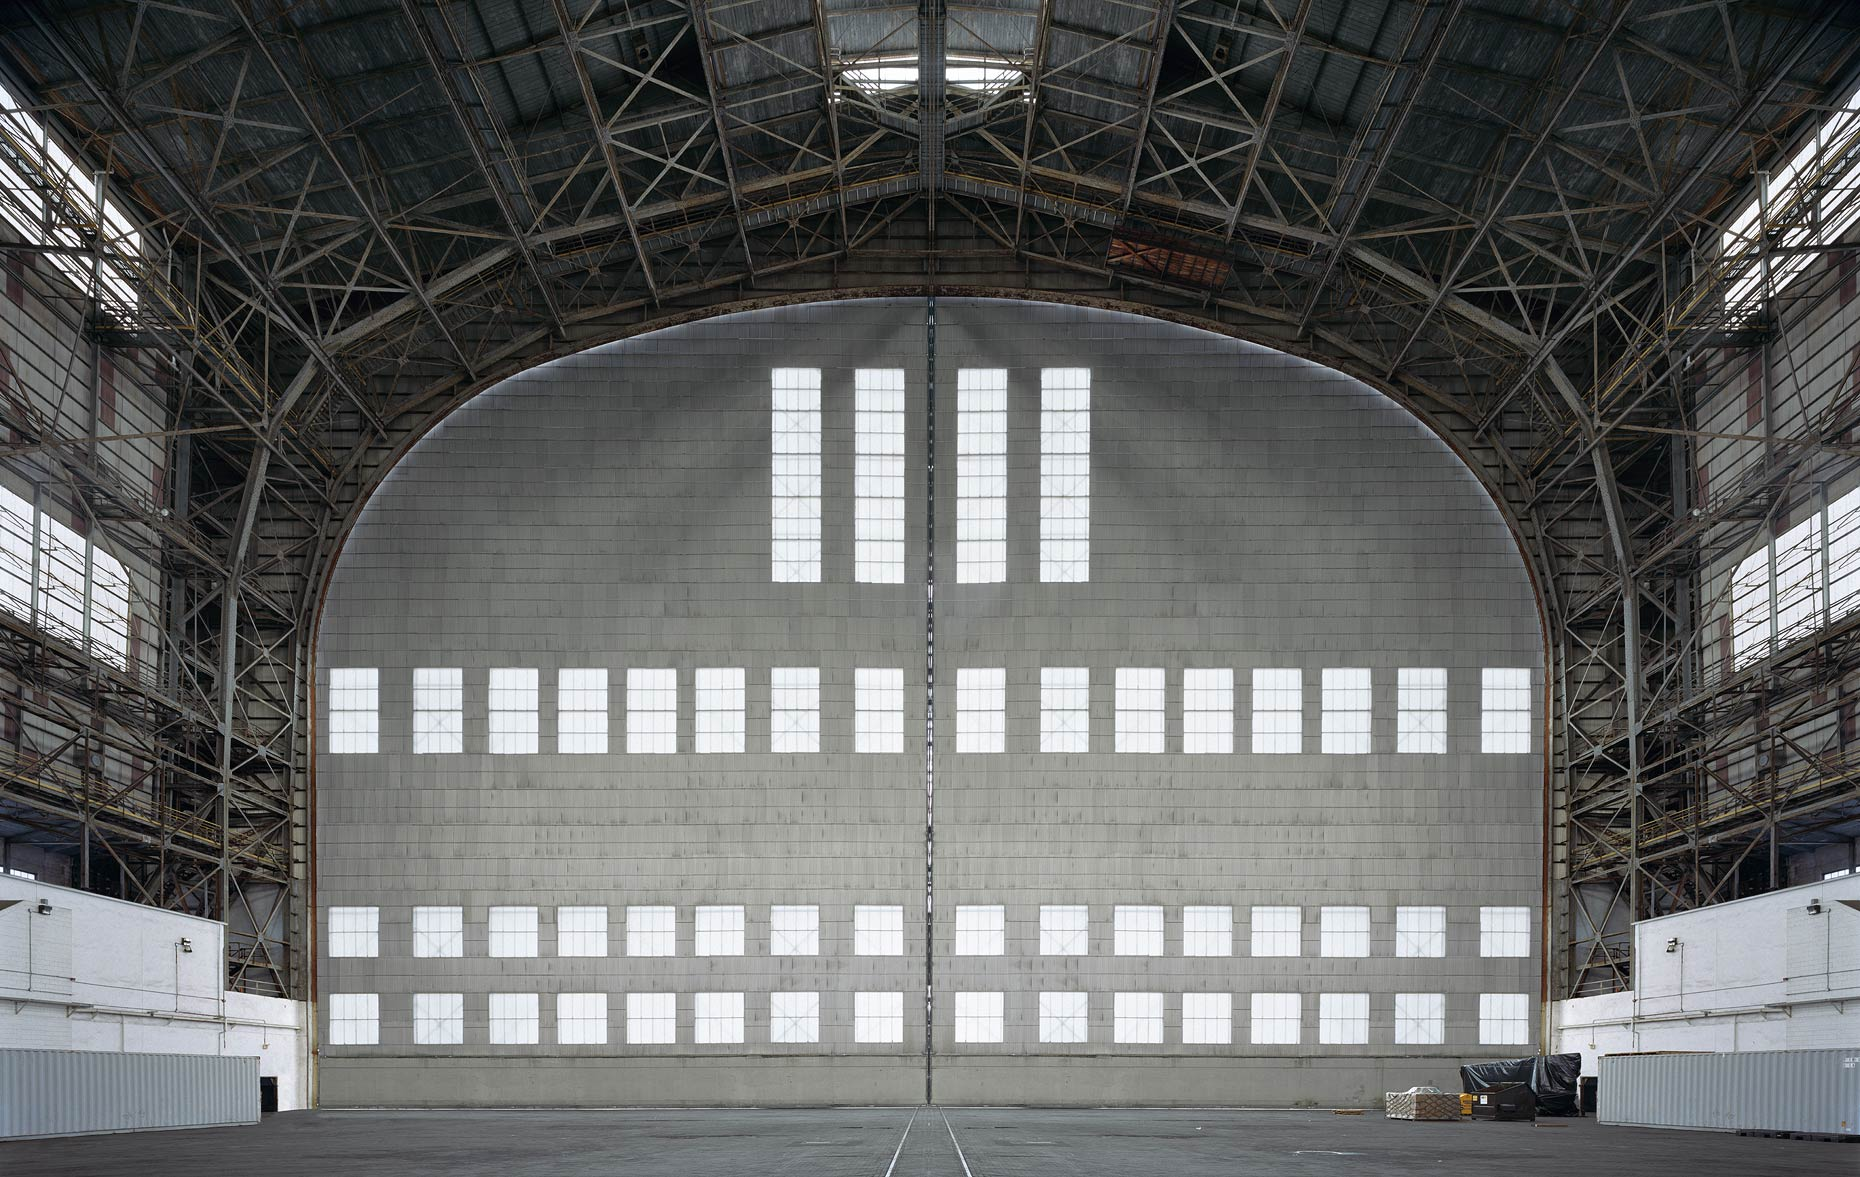 Hangar No. 1, Lakehurst Naval Air Station, Lakehurst, New Jersey, 2015